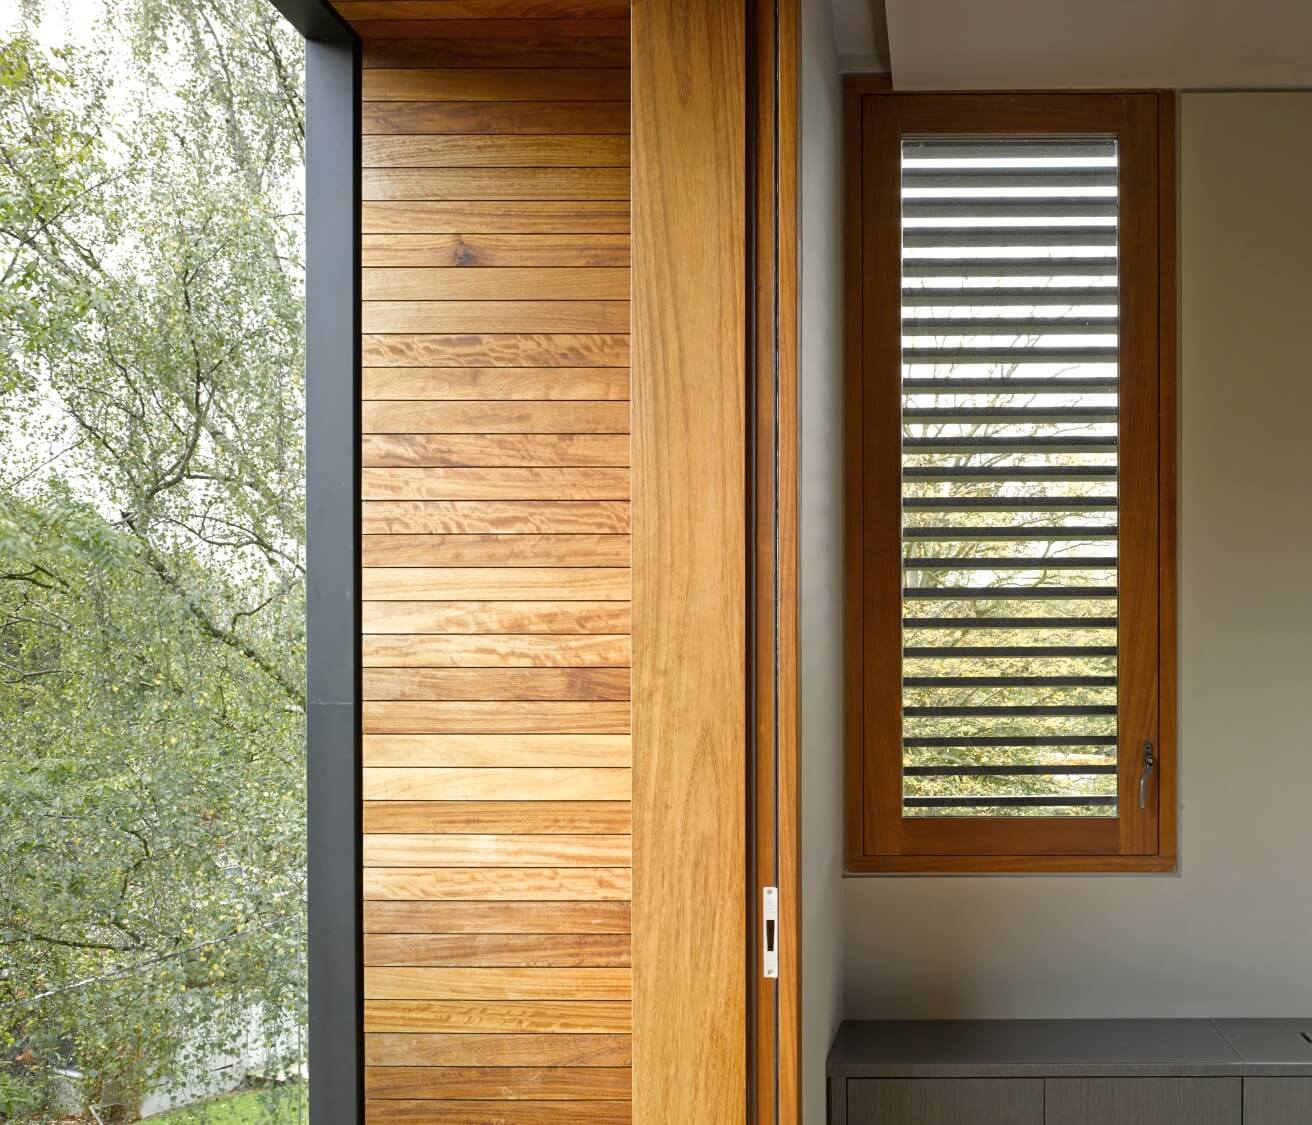 Here we see one of the upper level rooms open to the environment by pocket door, leading to the wood wrapped balcony.